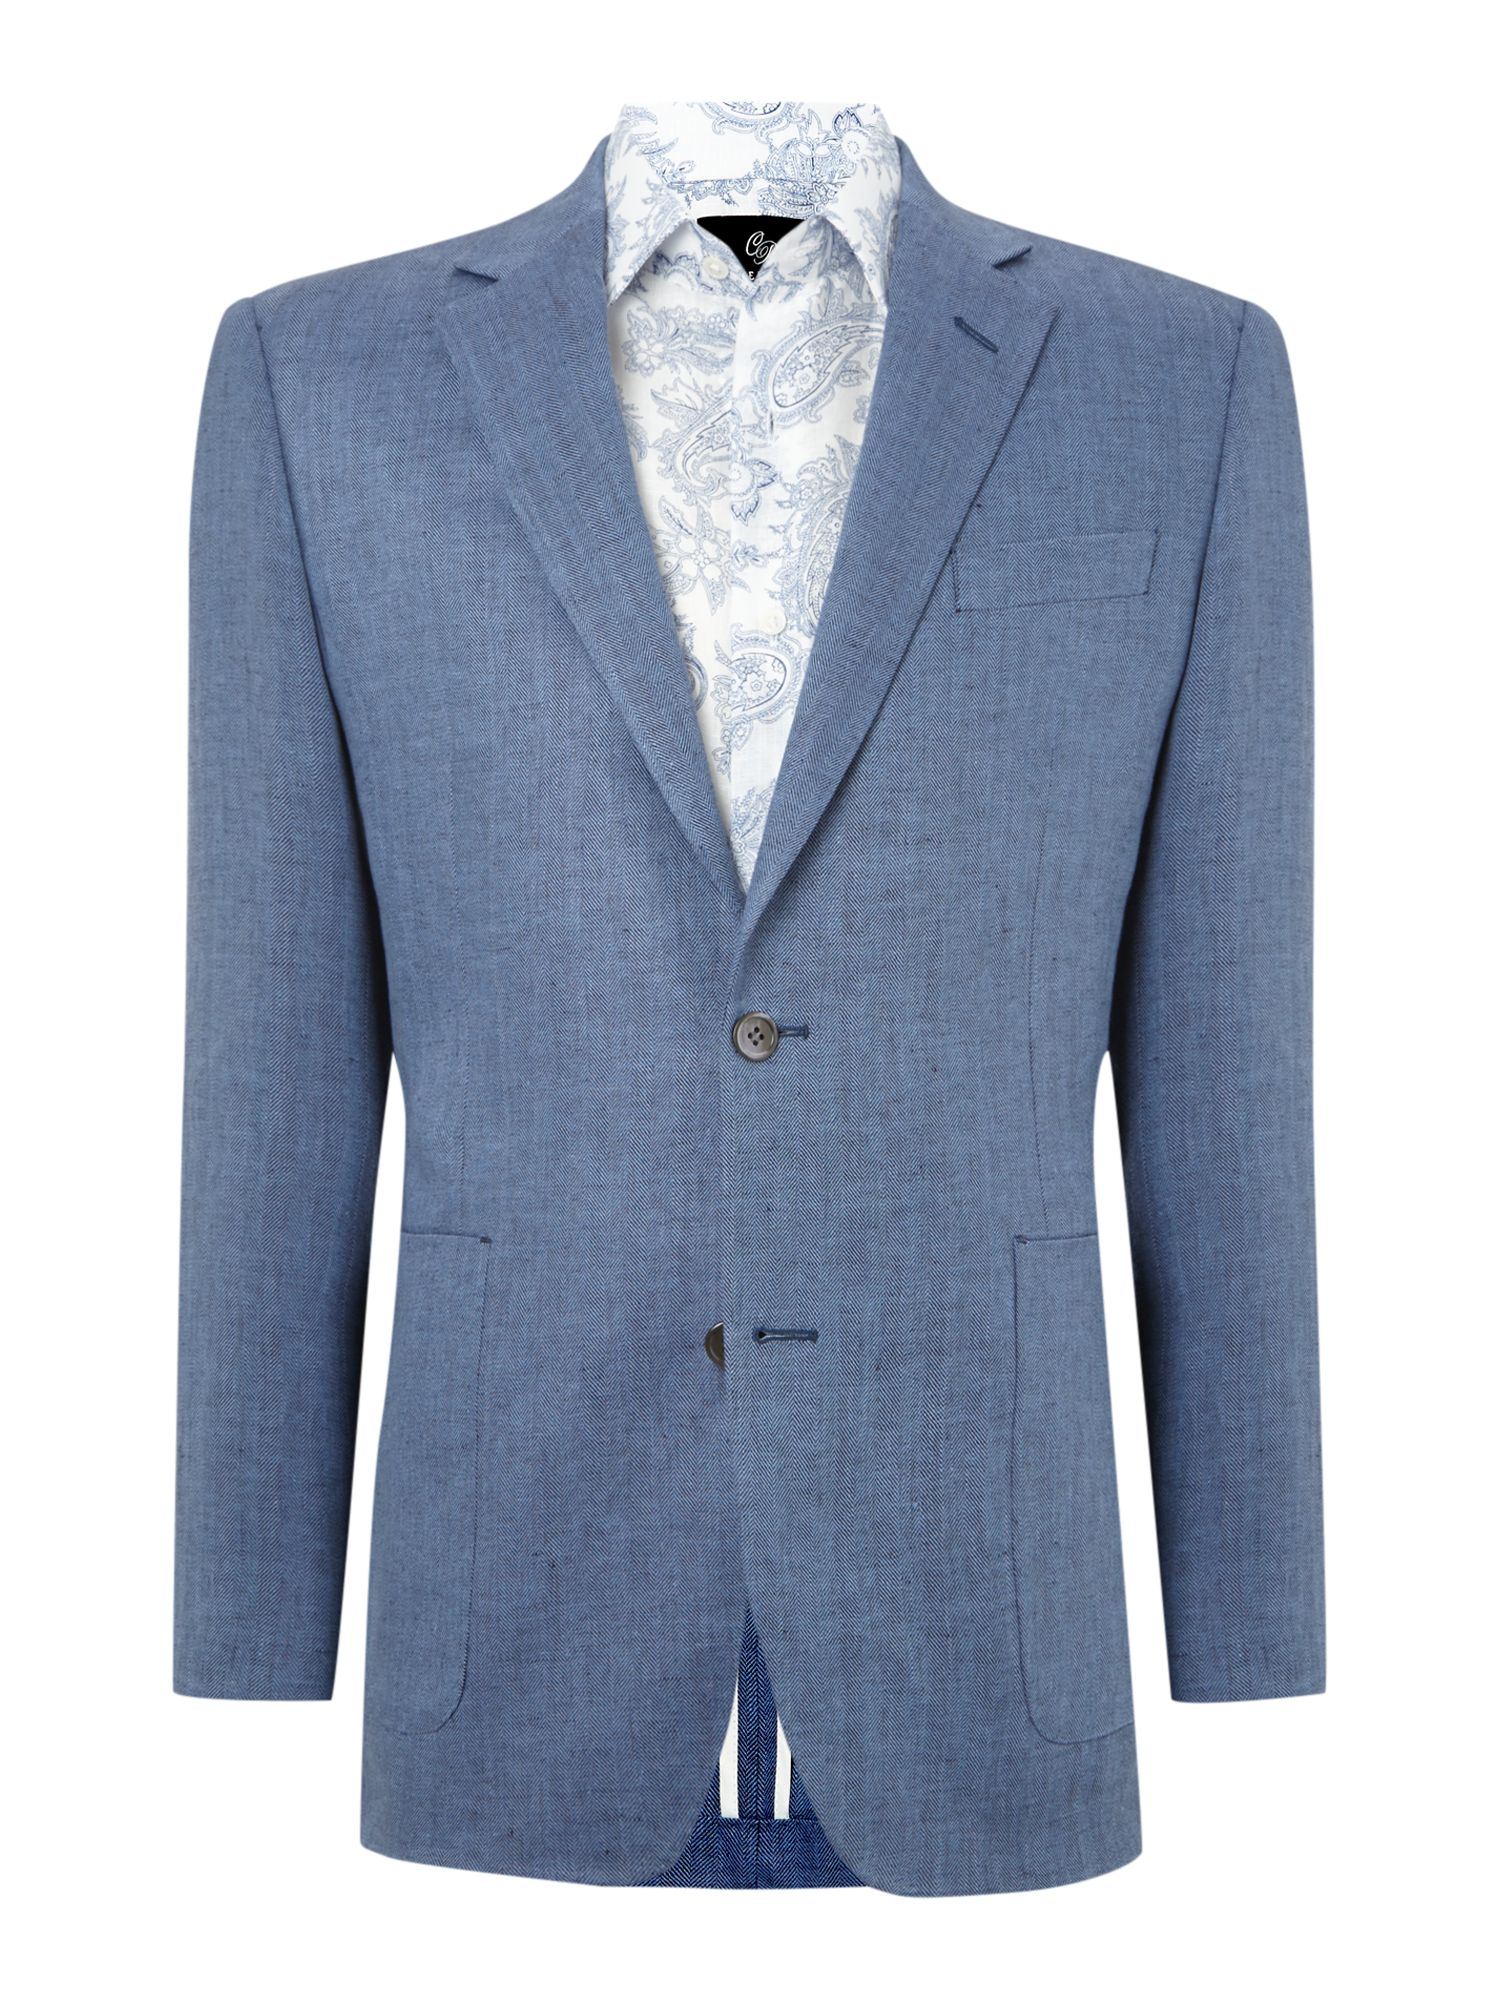 Herringbone formal blazer